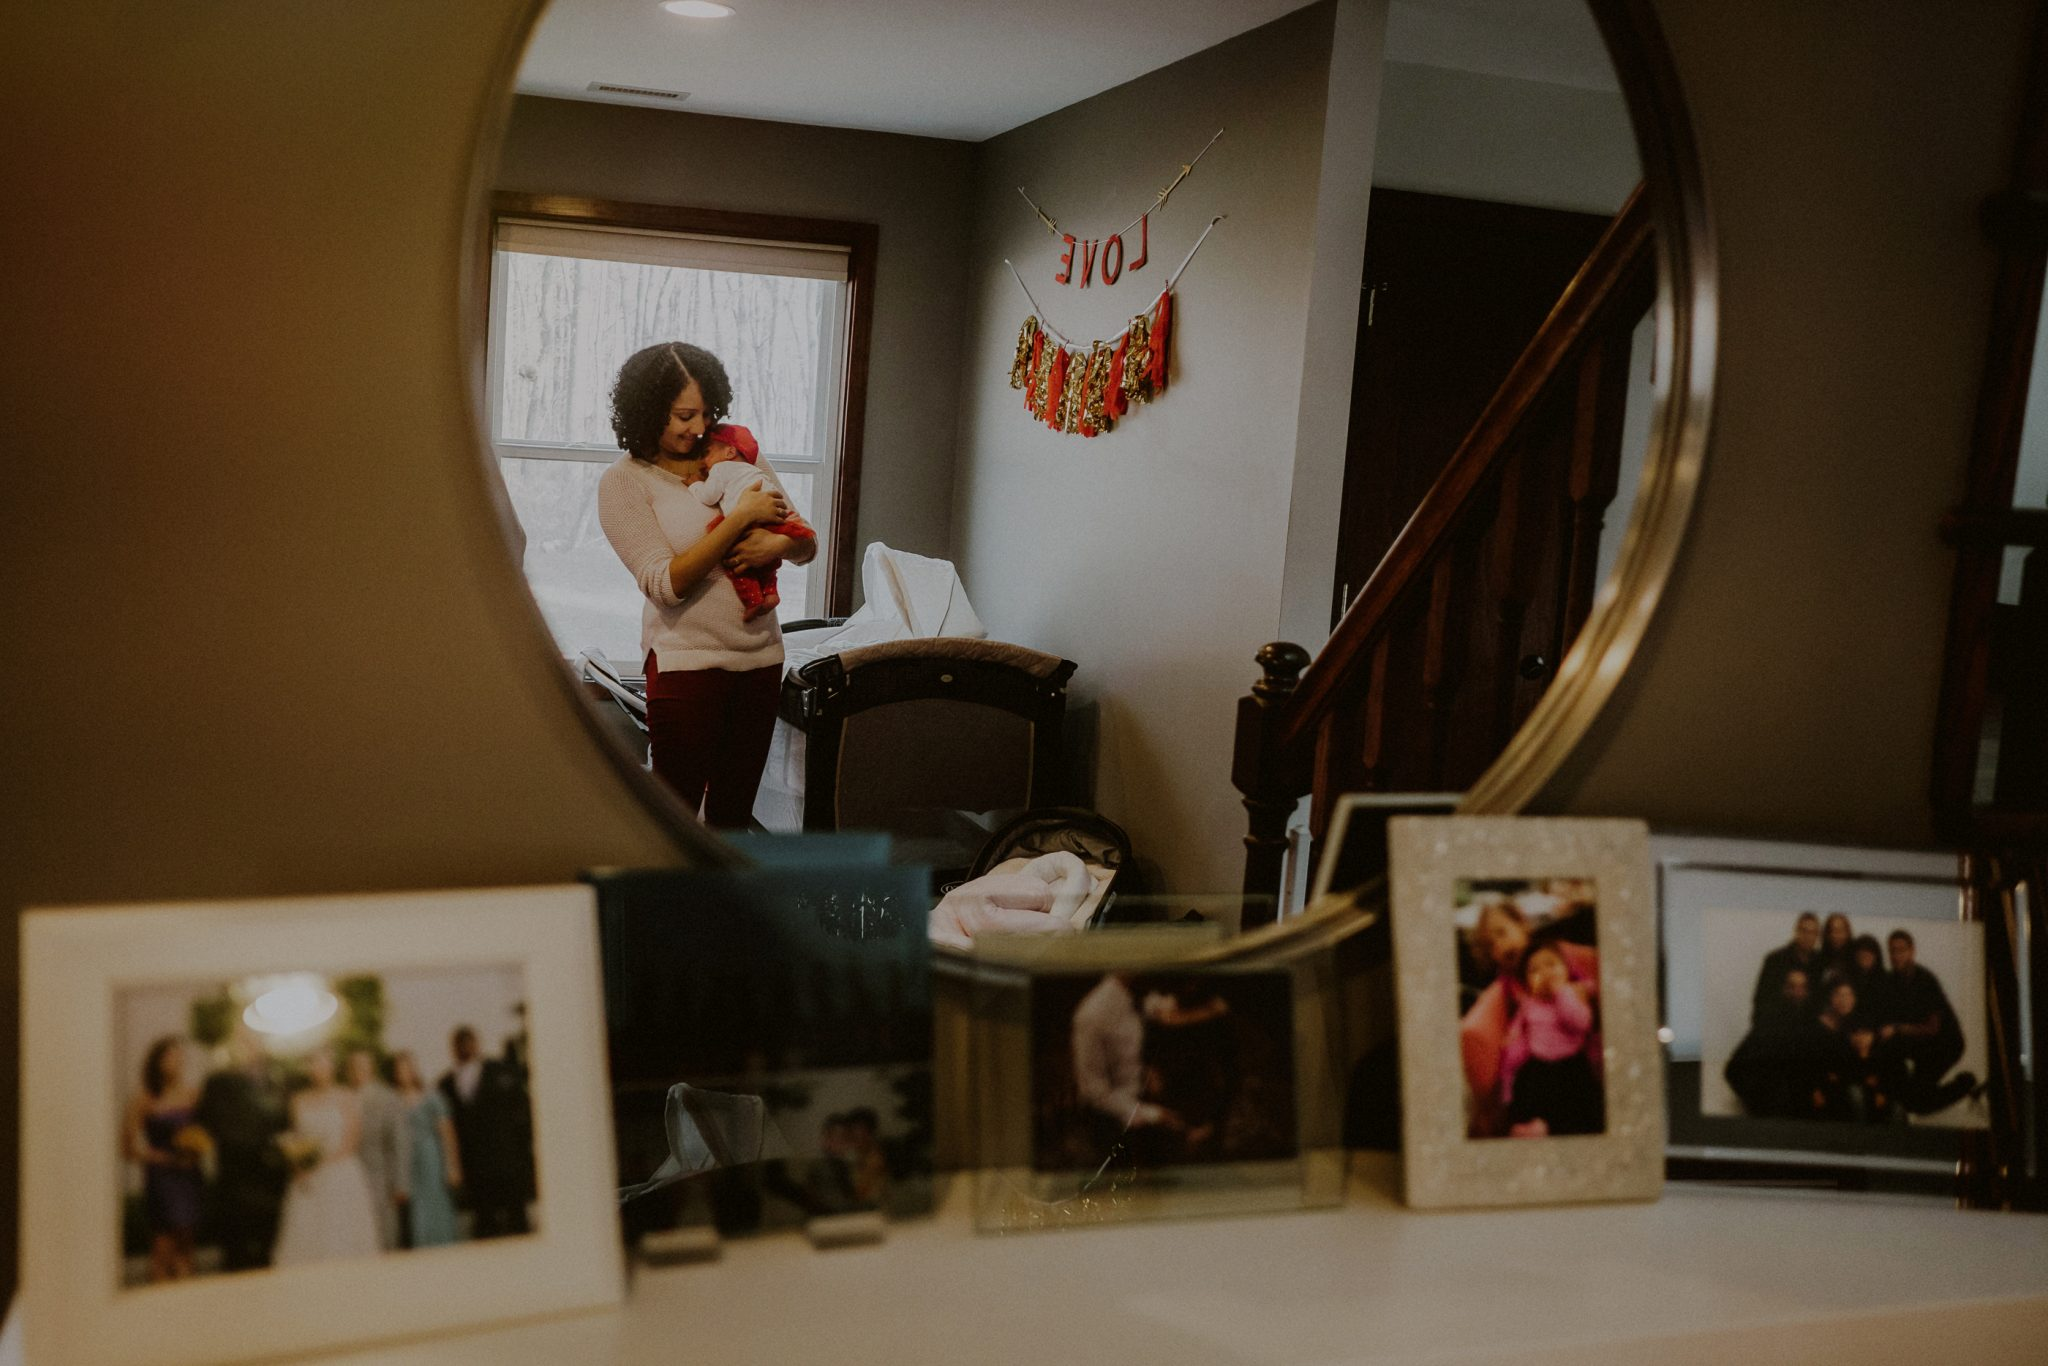 reflection of mother holding child in mirror, juxtaposed by printed family photos on counter